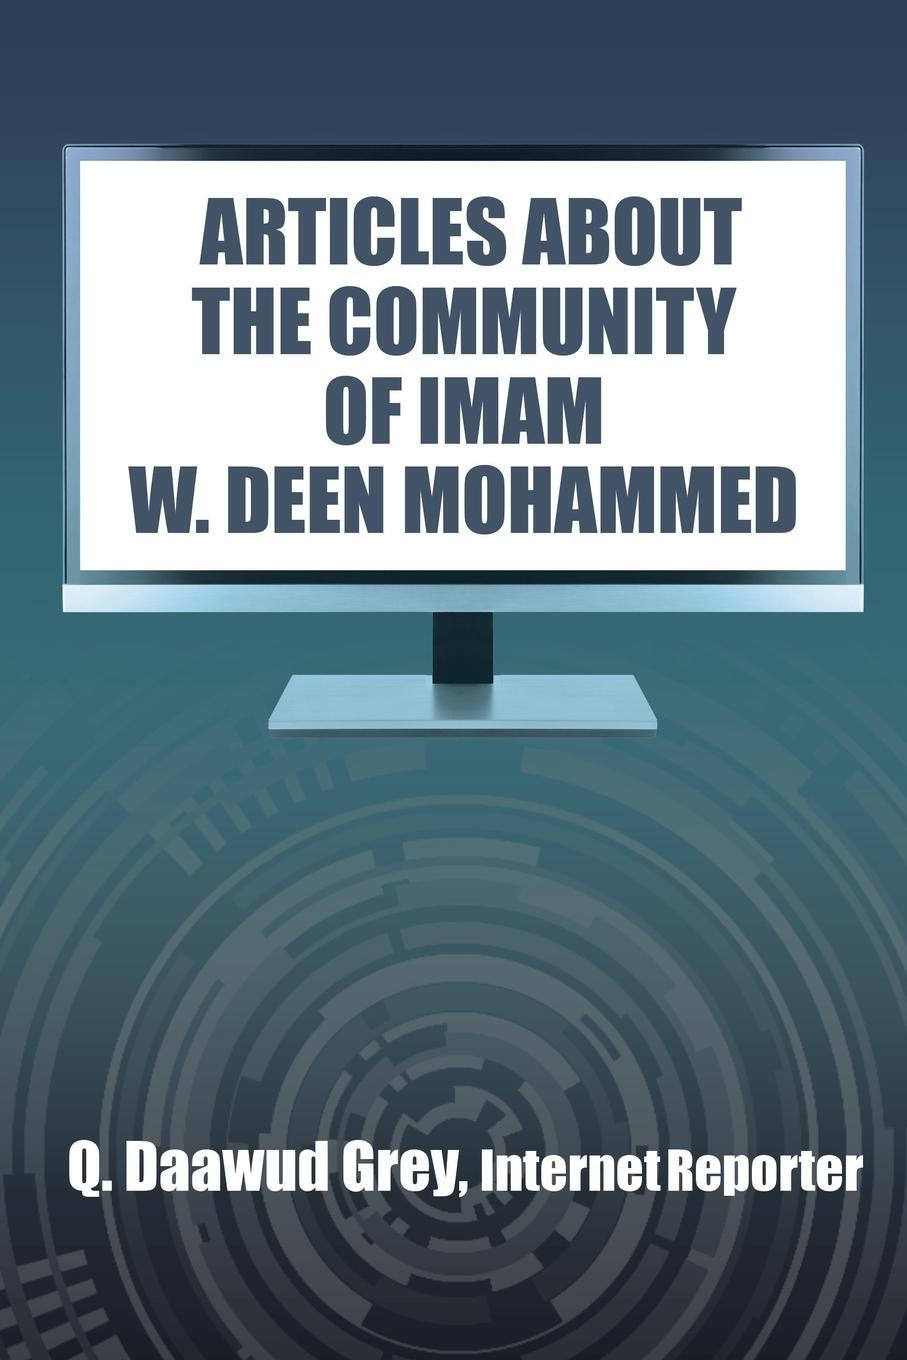 """Q. Daawud Grey. """"ARTICLES ABOUT THE COMMUNITY OF IMAM W. DEEN MOHAMMED"""""""